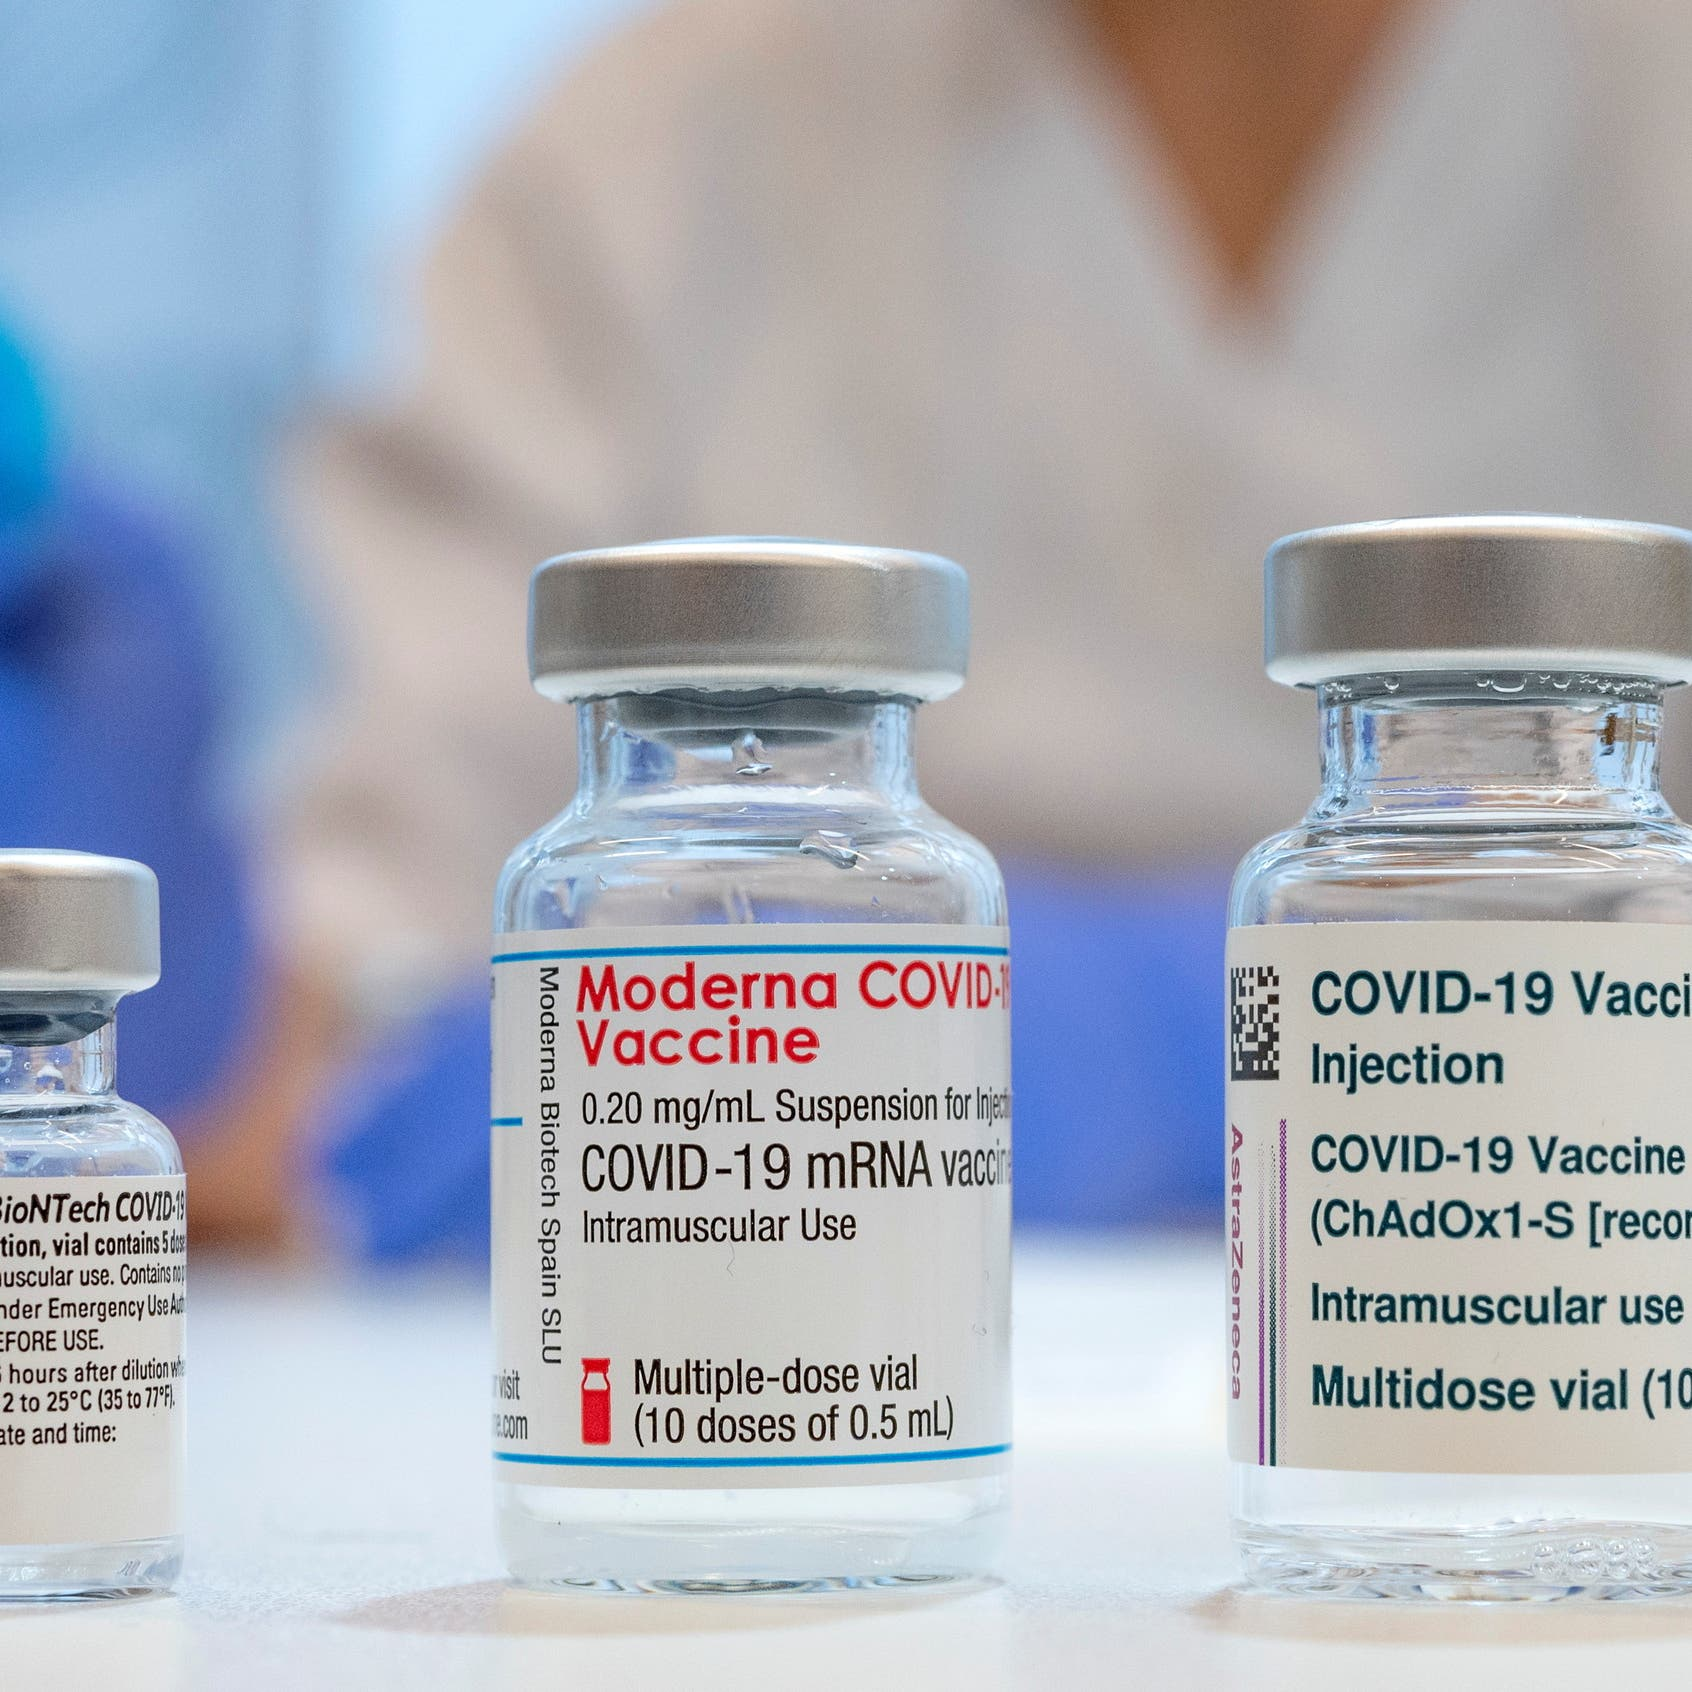 Is it safe to mix-and-match COVID-19 vaccines? Here's what we know so far